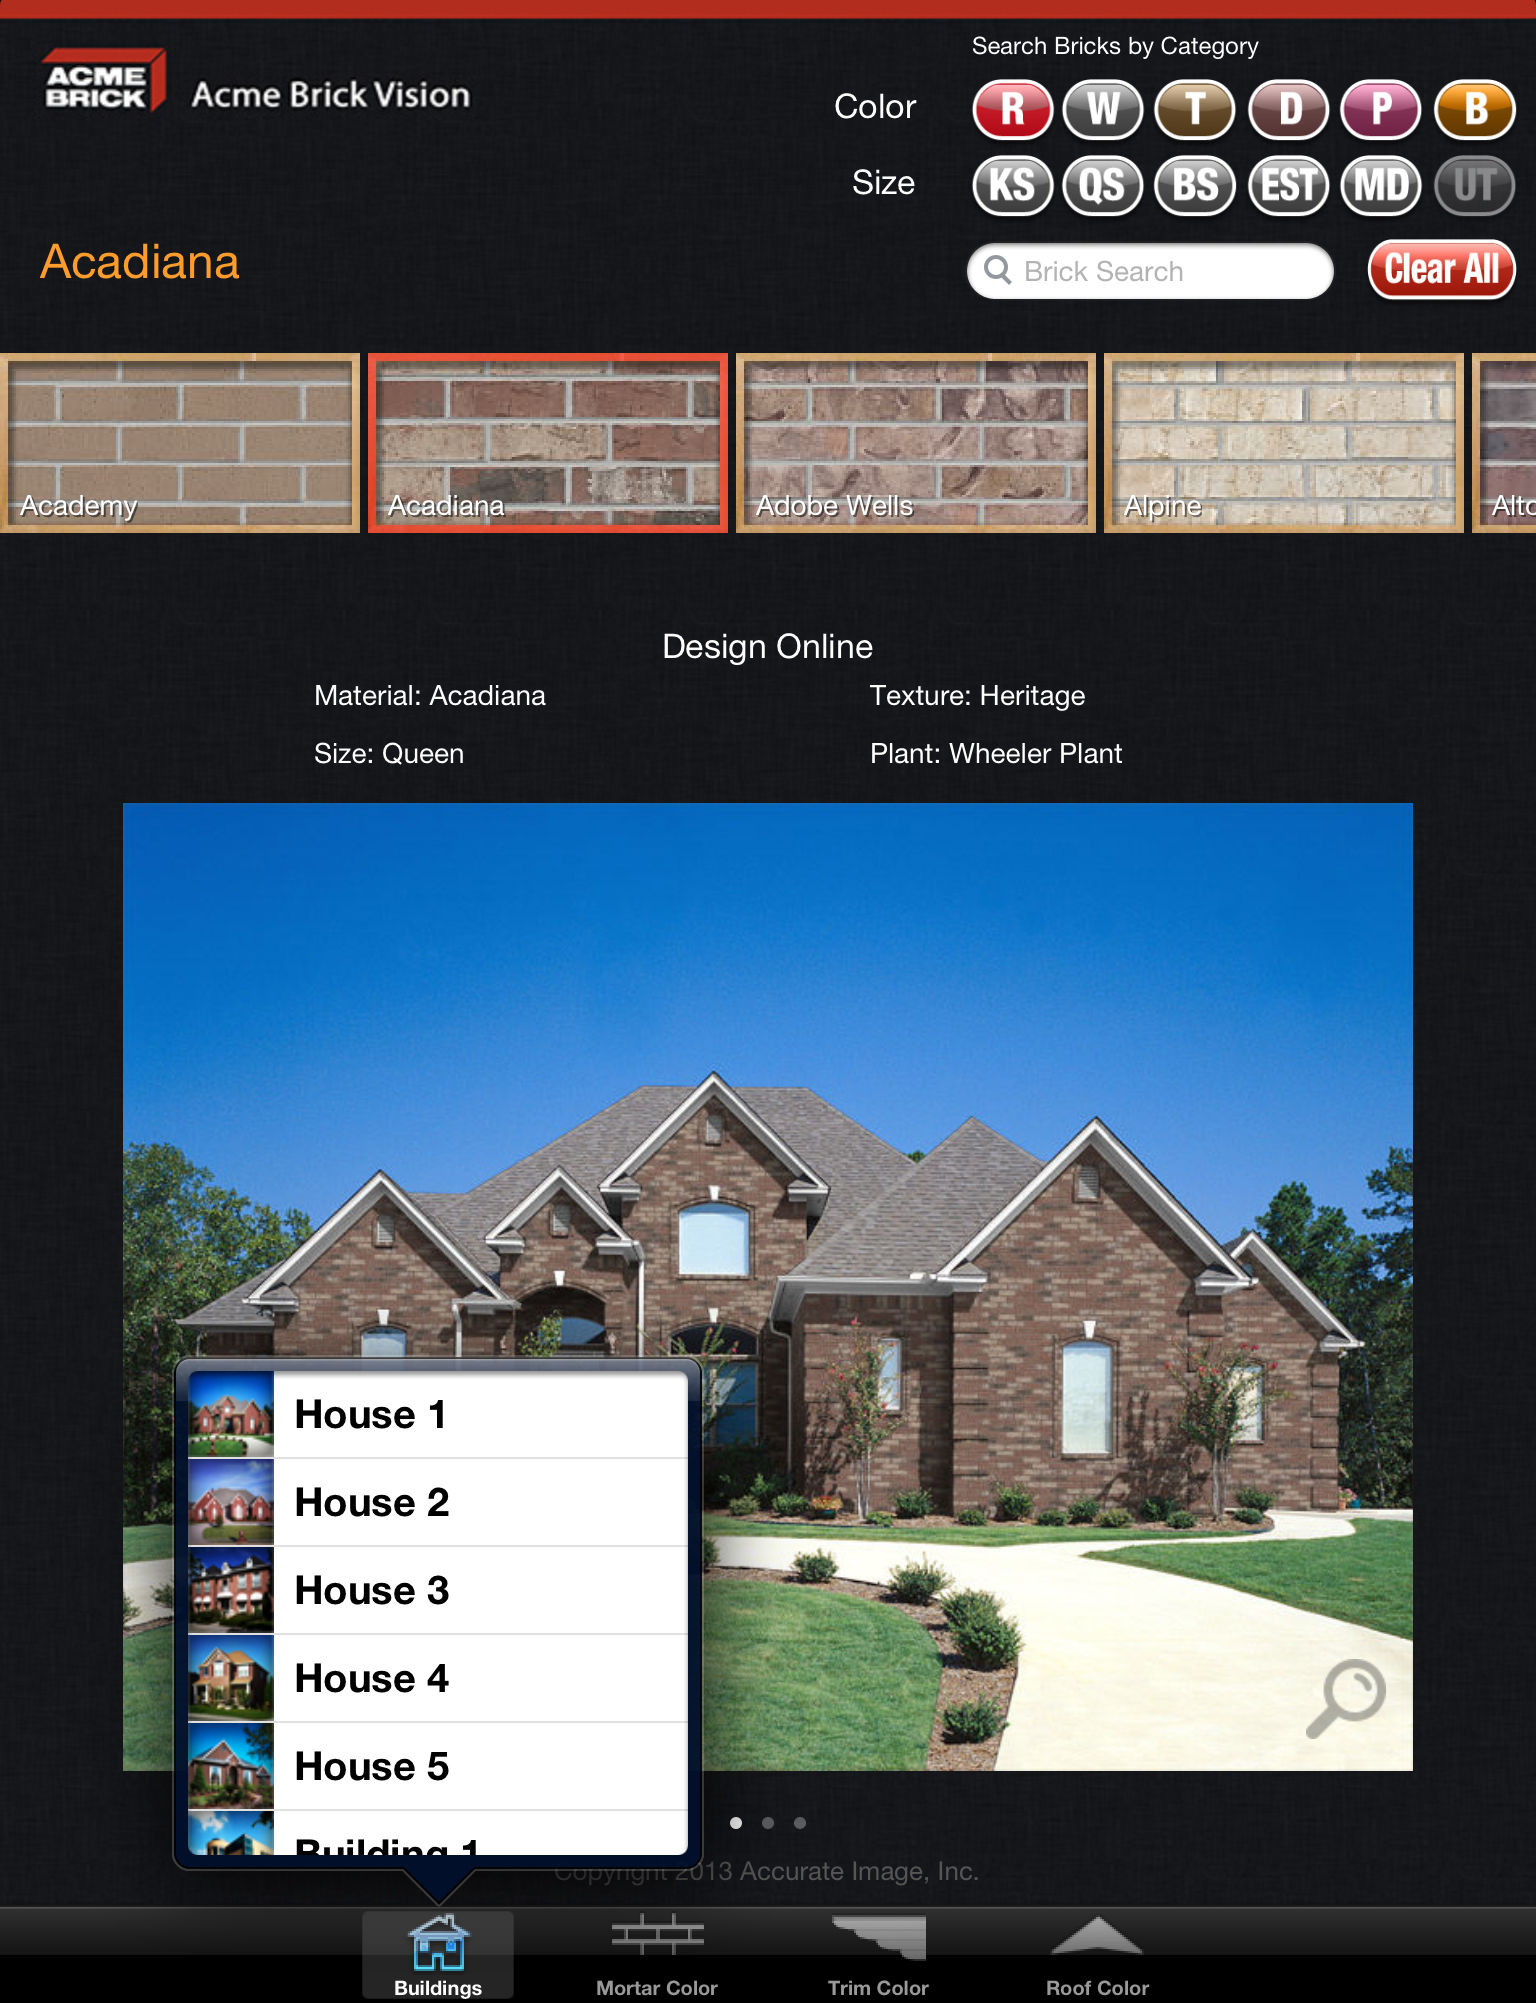 Acme brick company debuts new mobile app acme brick vision for selecting a sample elevation is the first step geenschuldenfo Choice Image